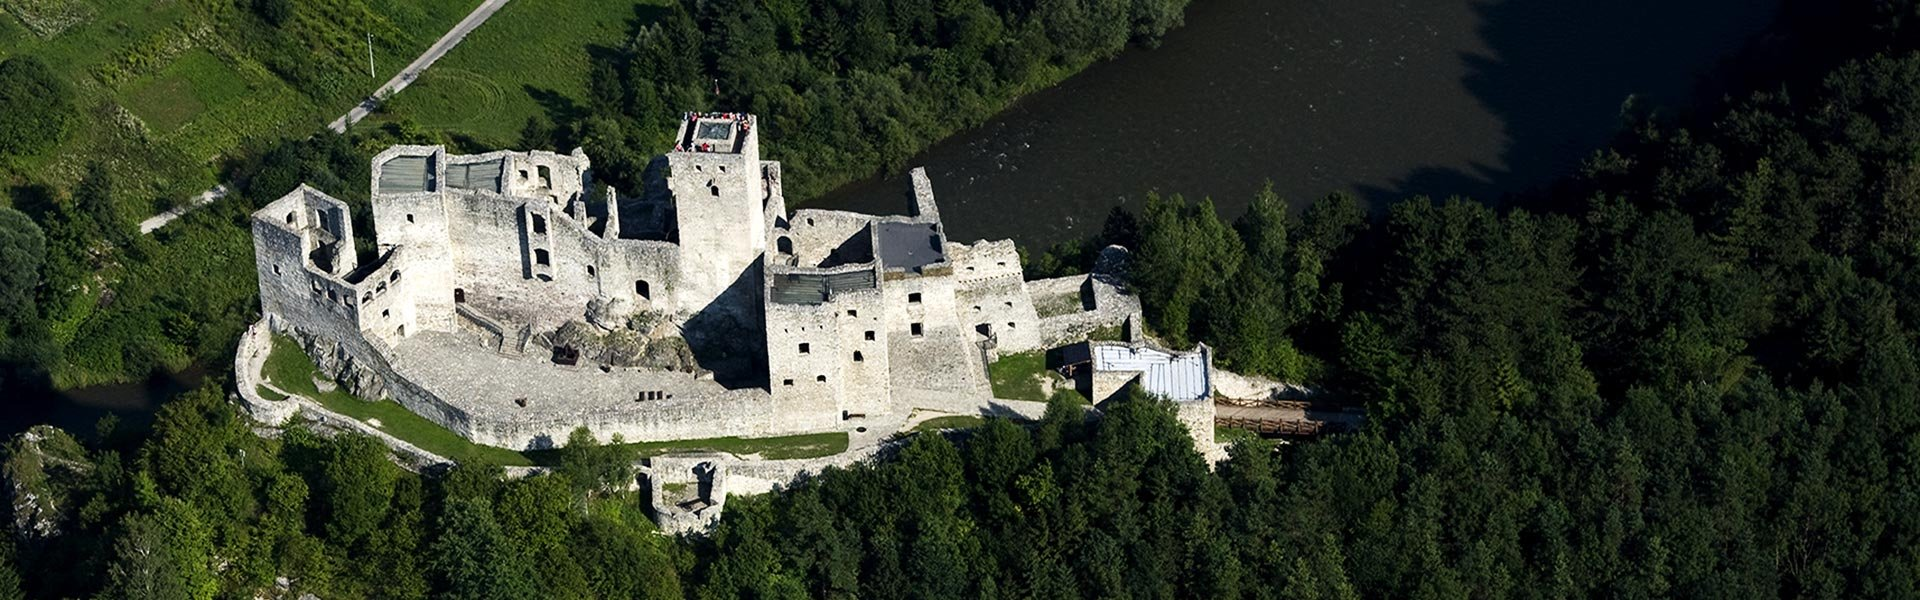 CASTLES AND MUSEUMS IN VICINITY OF VILLAGE TERCHOVA